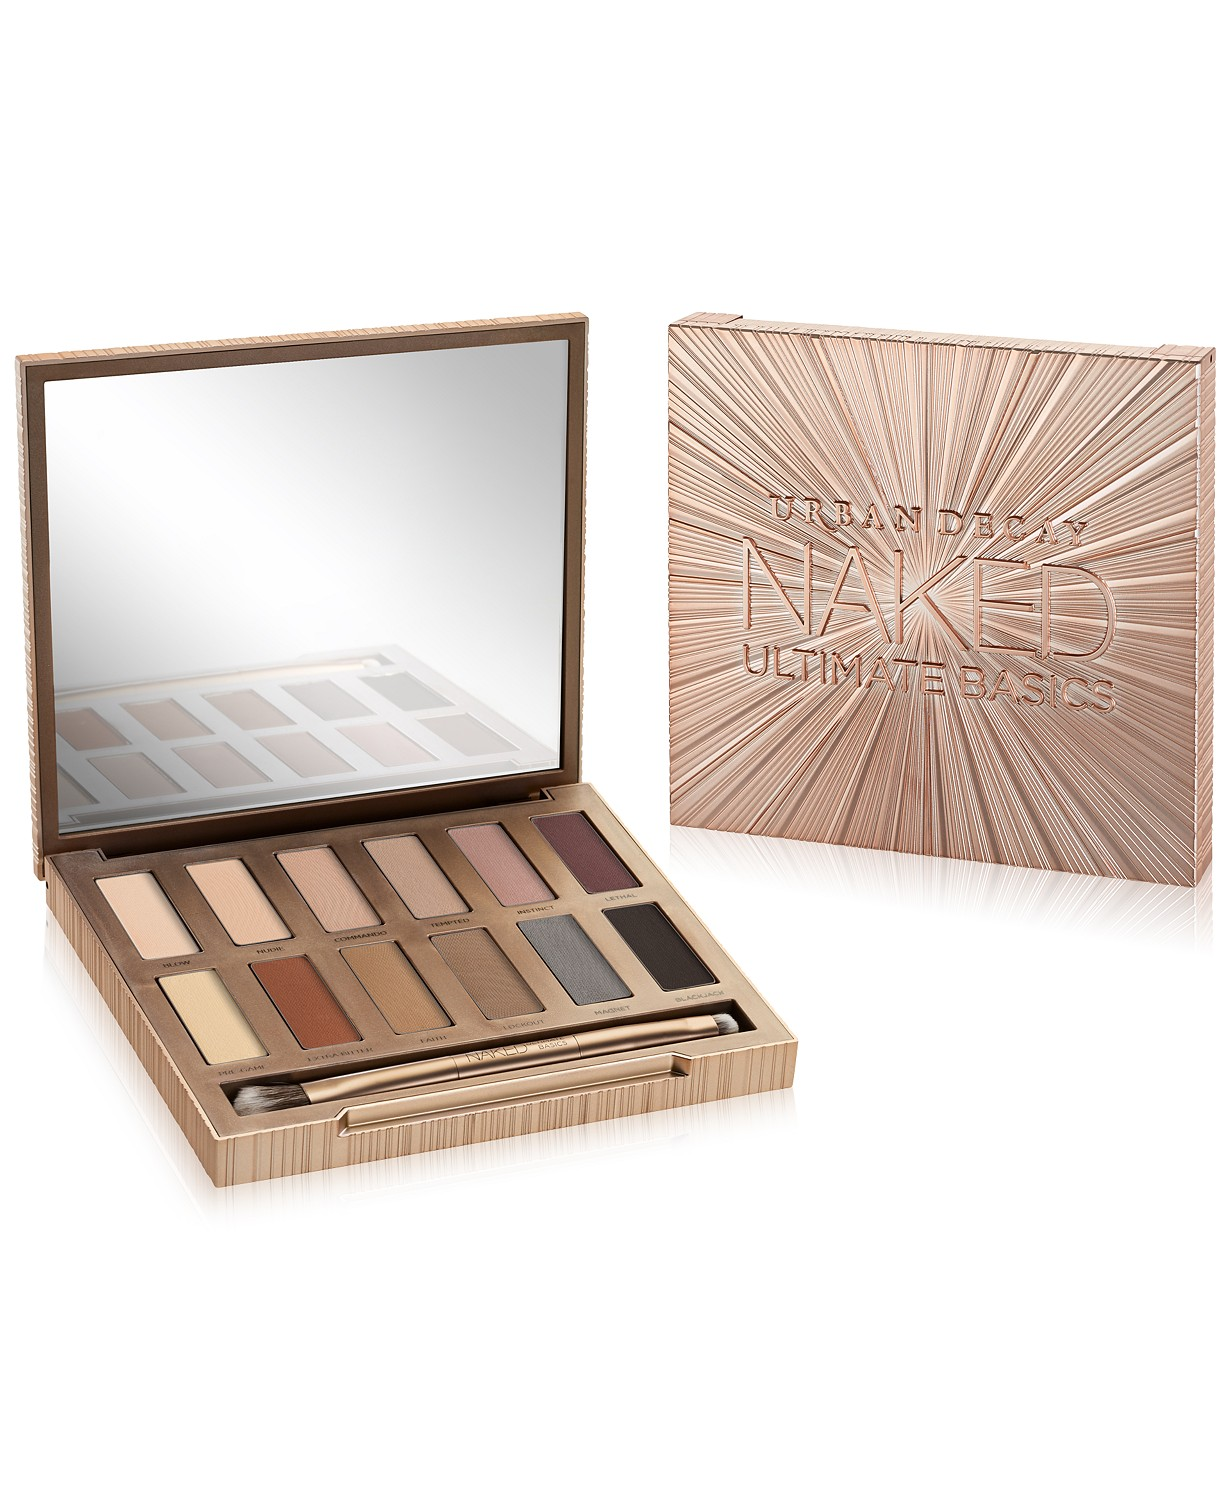 Urban Decay Ultimate Basics Pa...